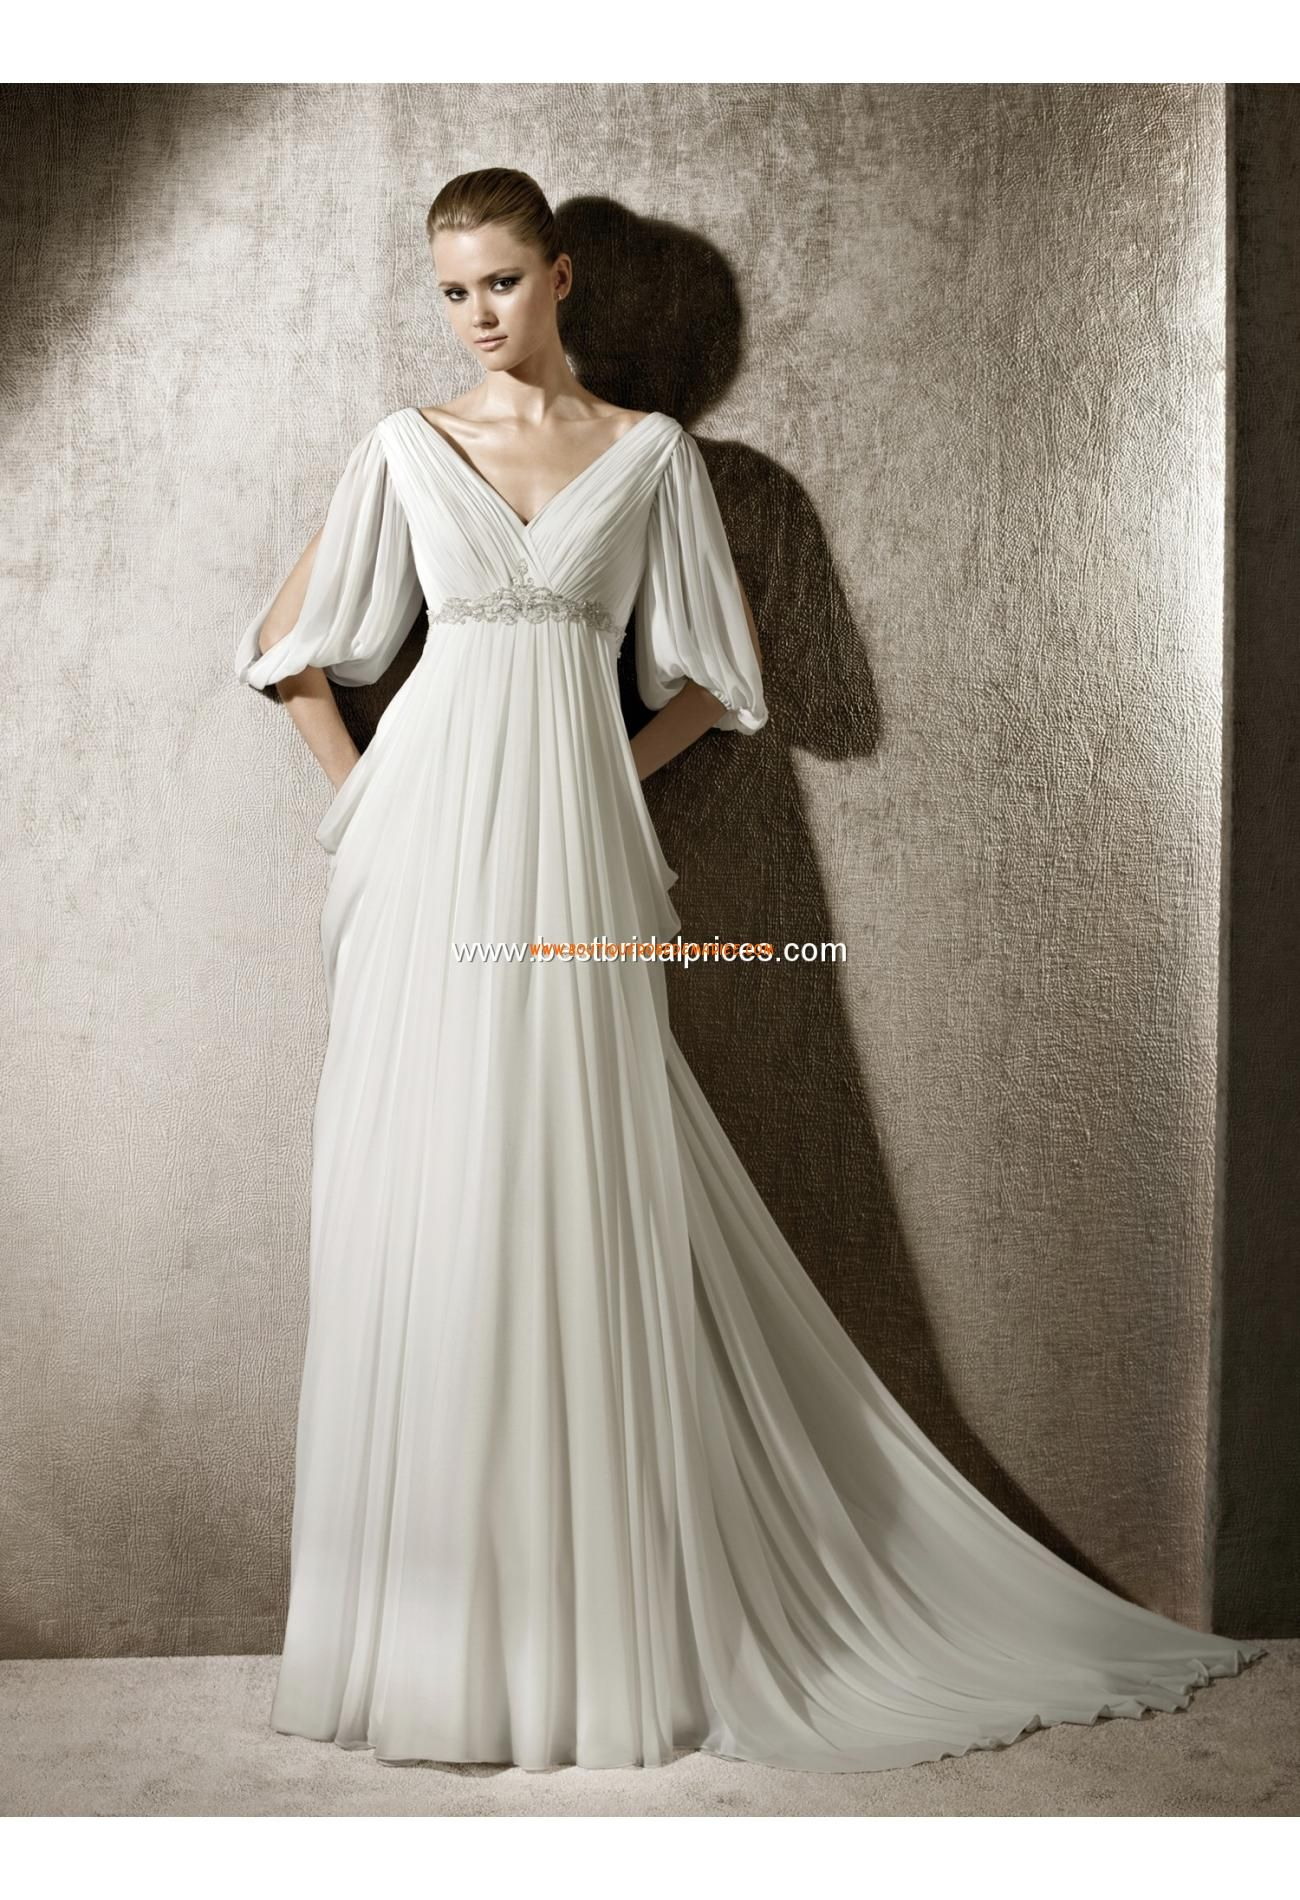 Beach wedding mother of the bride  Robe de mariée avec manches mousseline  Robe de mariée   Pinterest